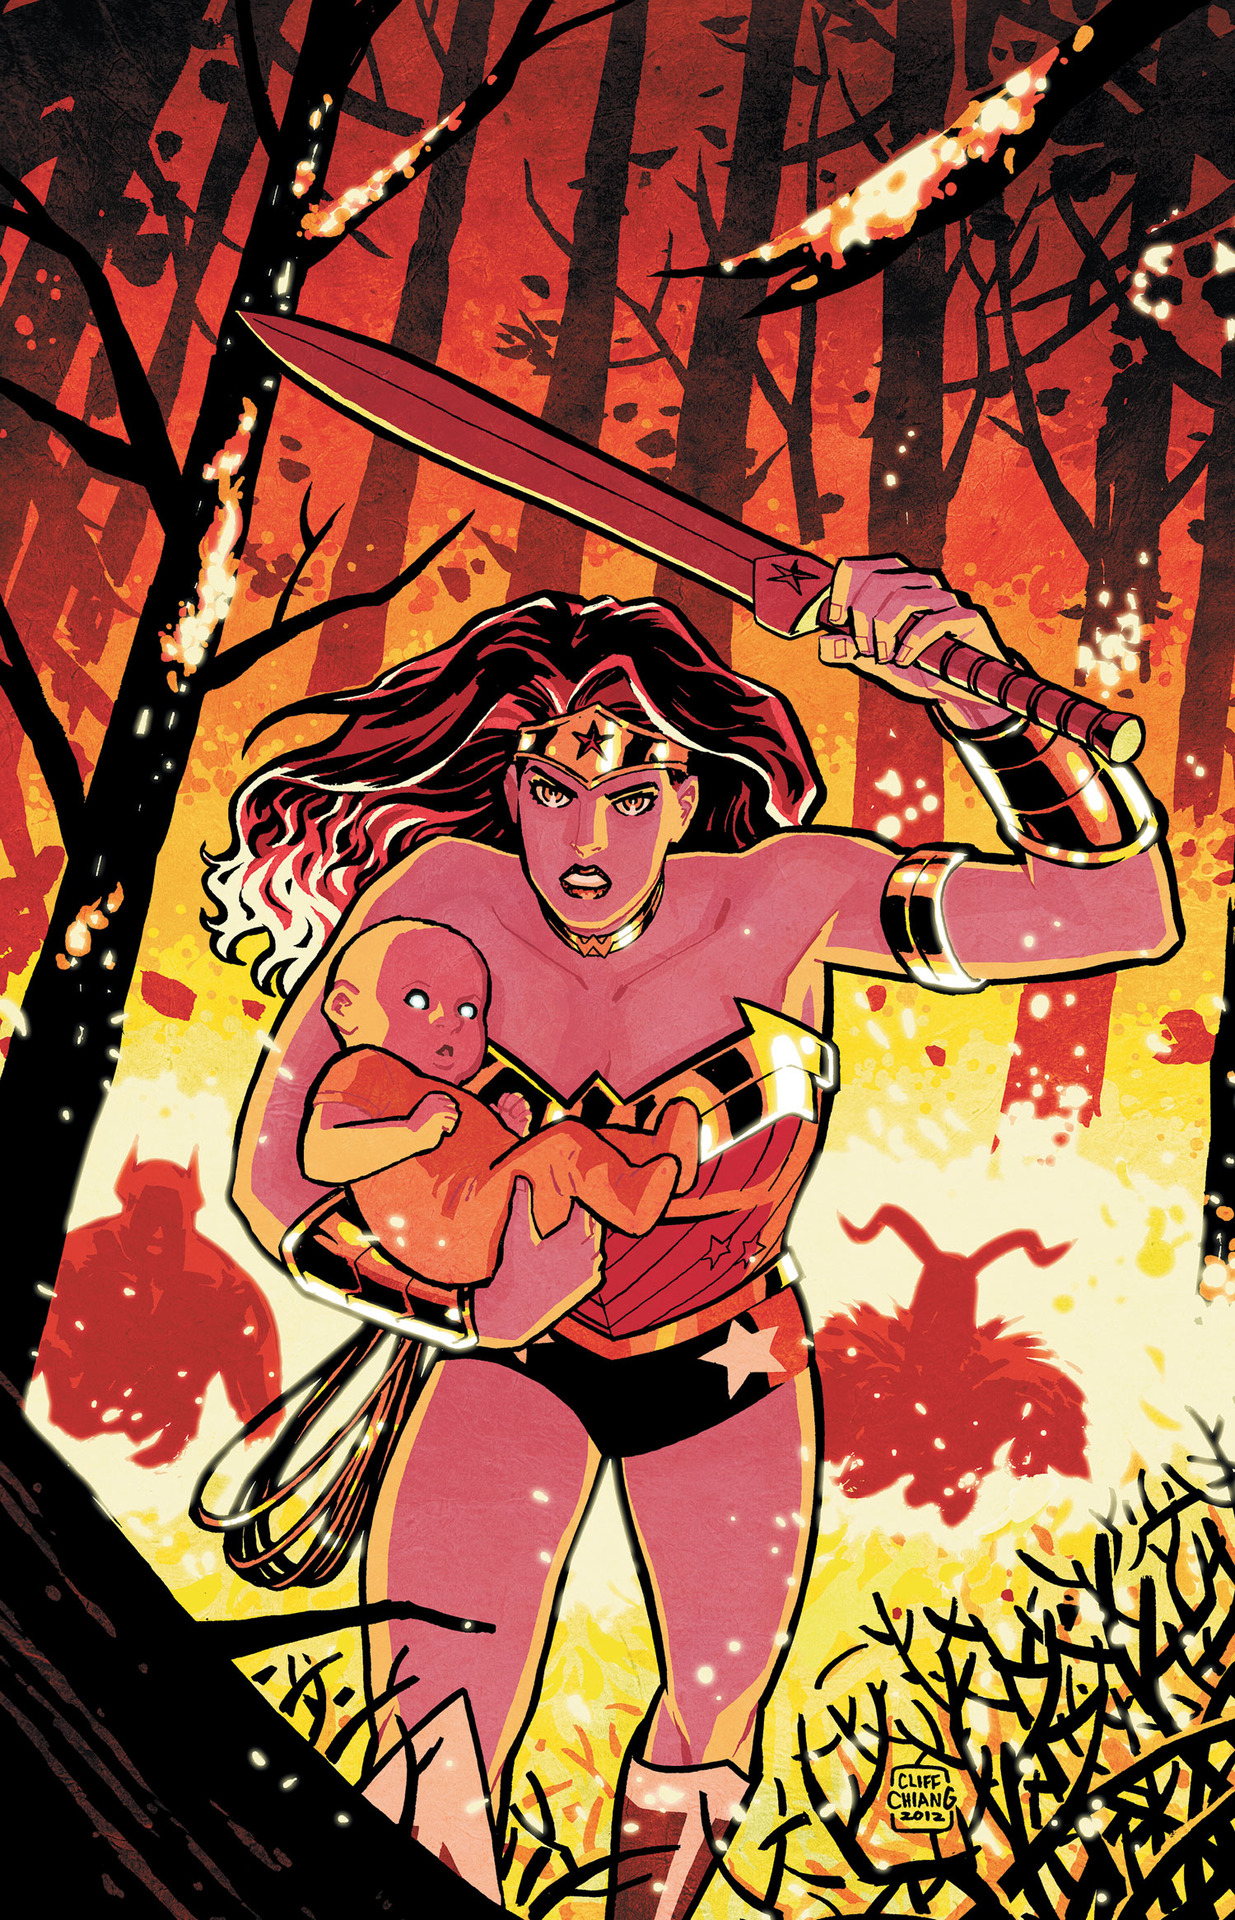 Wonder Woman Vol 4 18 Textless.jpg